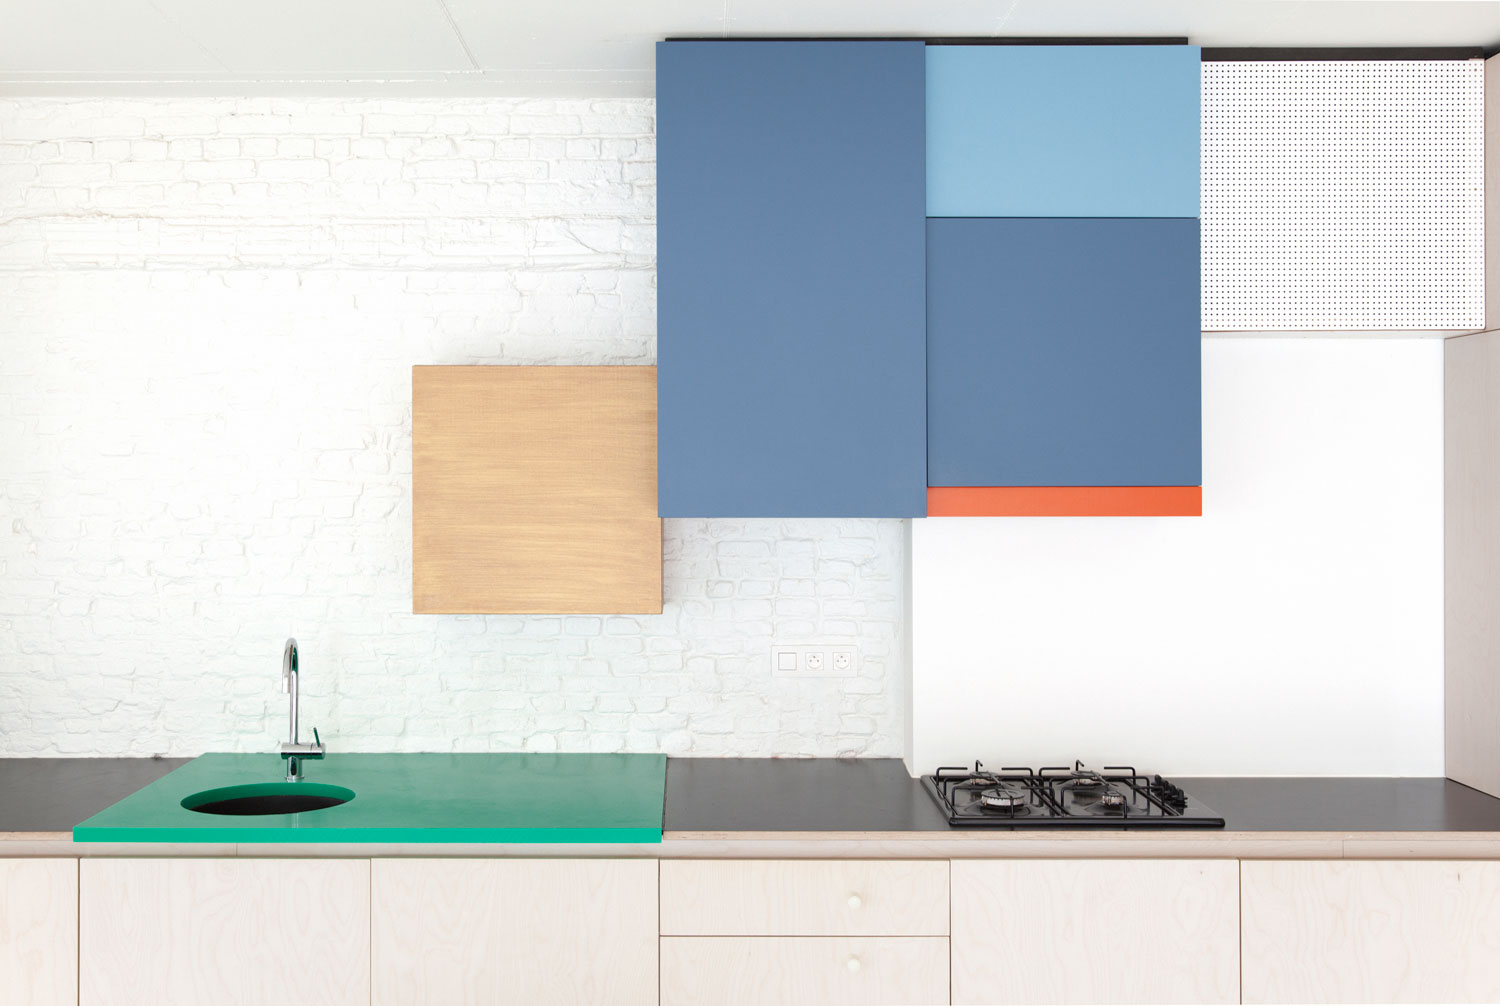 colorful kitchen by belgian designer dries otten 3 Colorful Kitchen By Belgian Designer Dries Otten